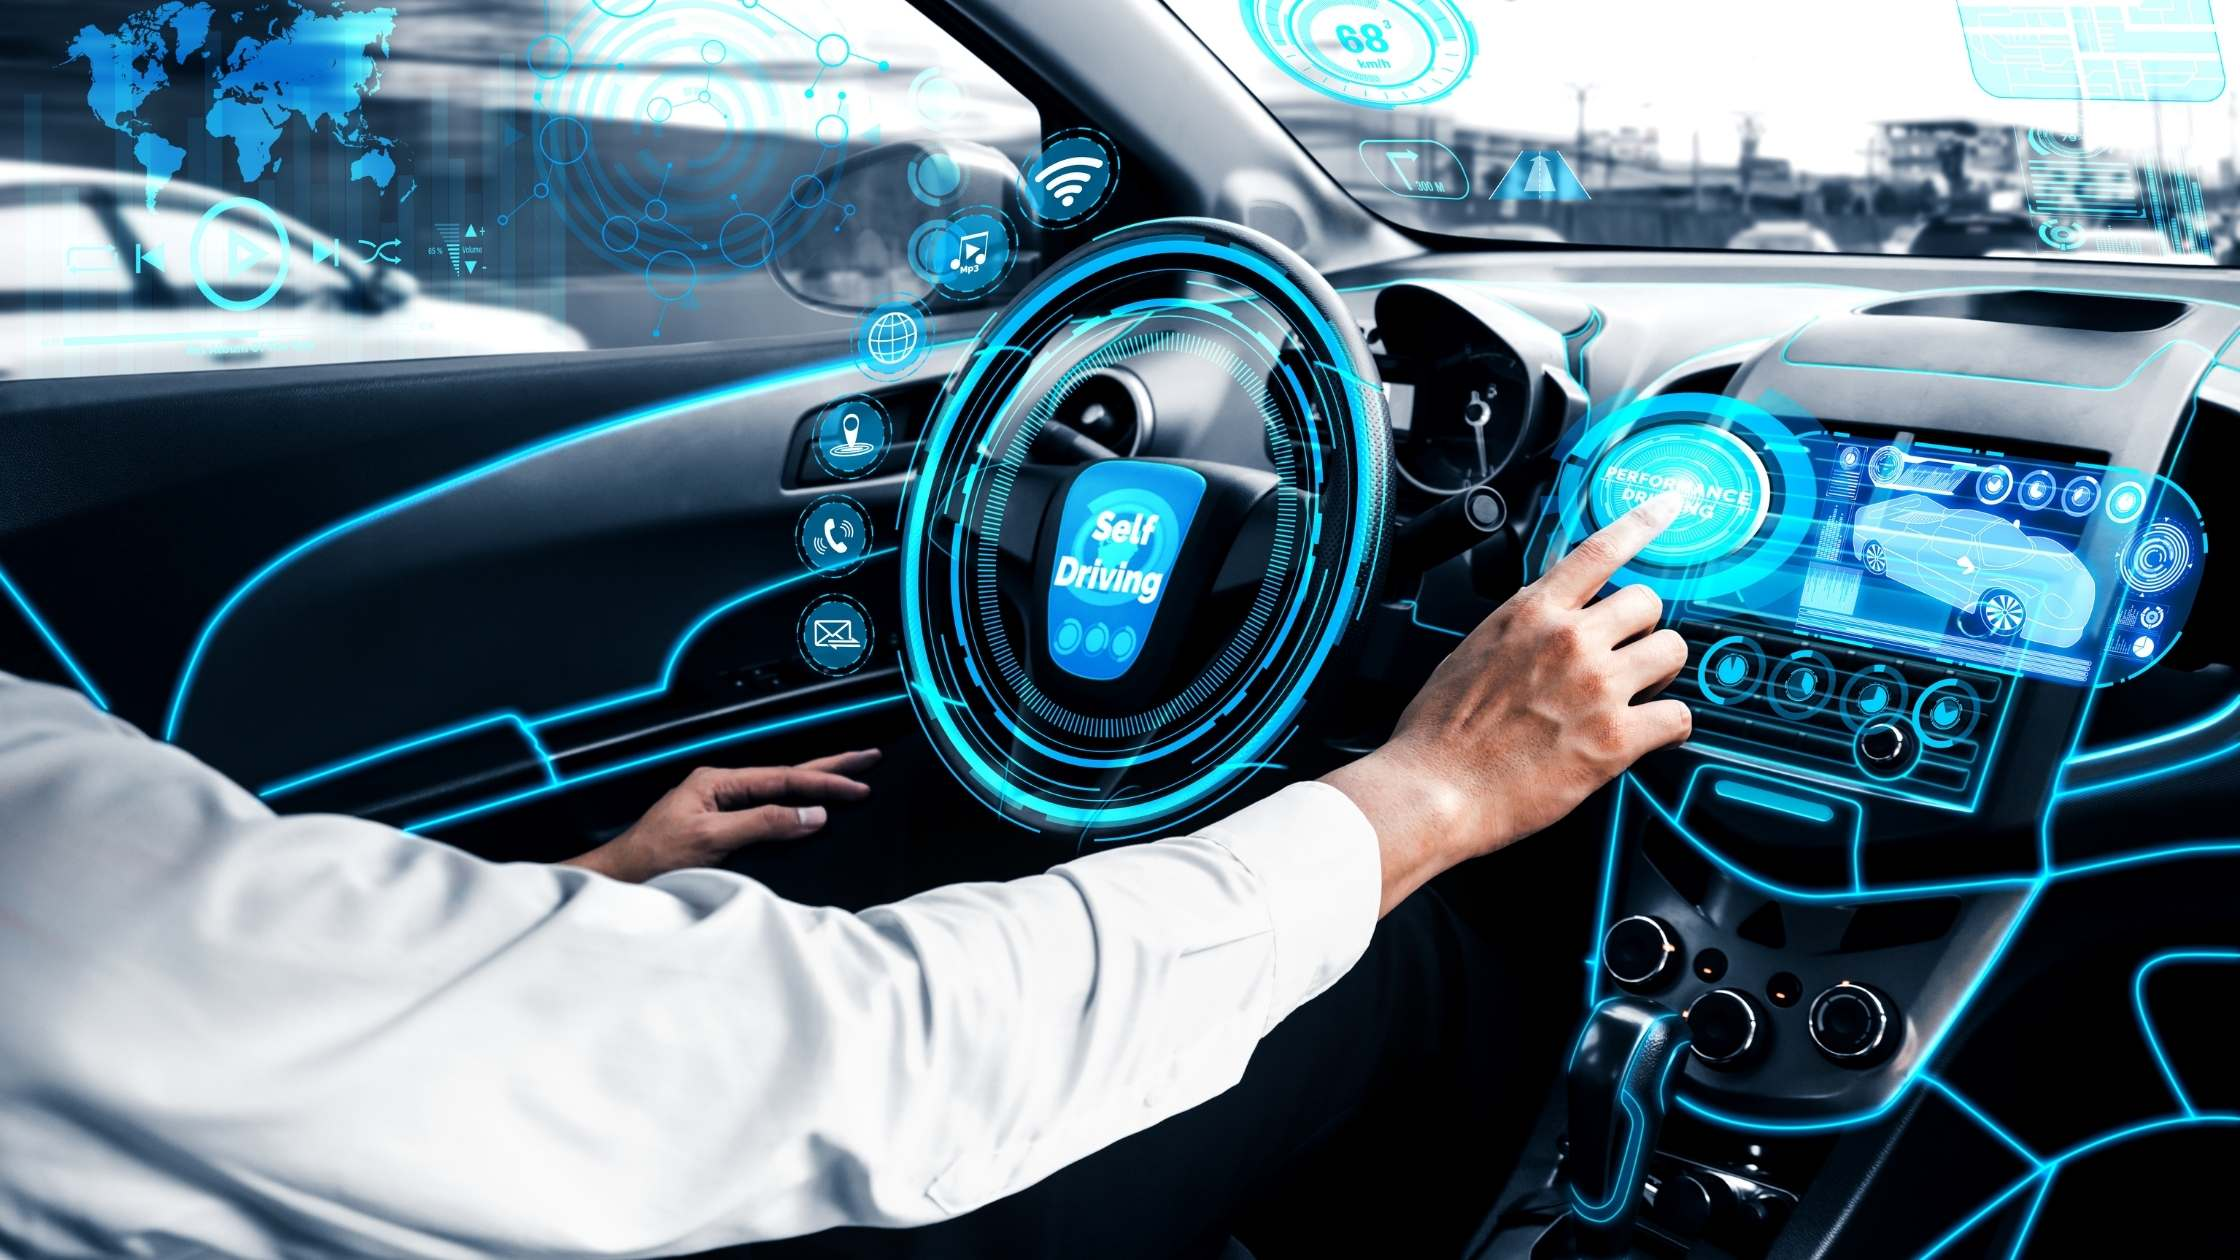 Close up of car interior and driver with a futuristic autonomous vehicle interface.